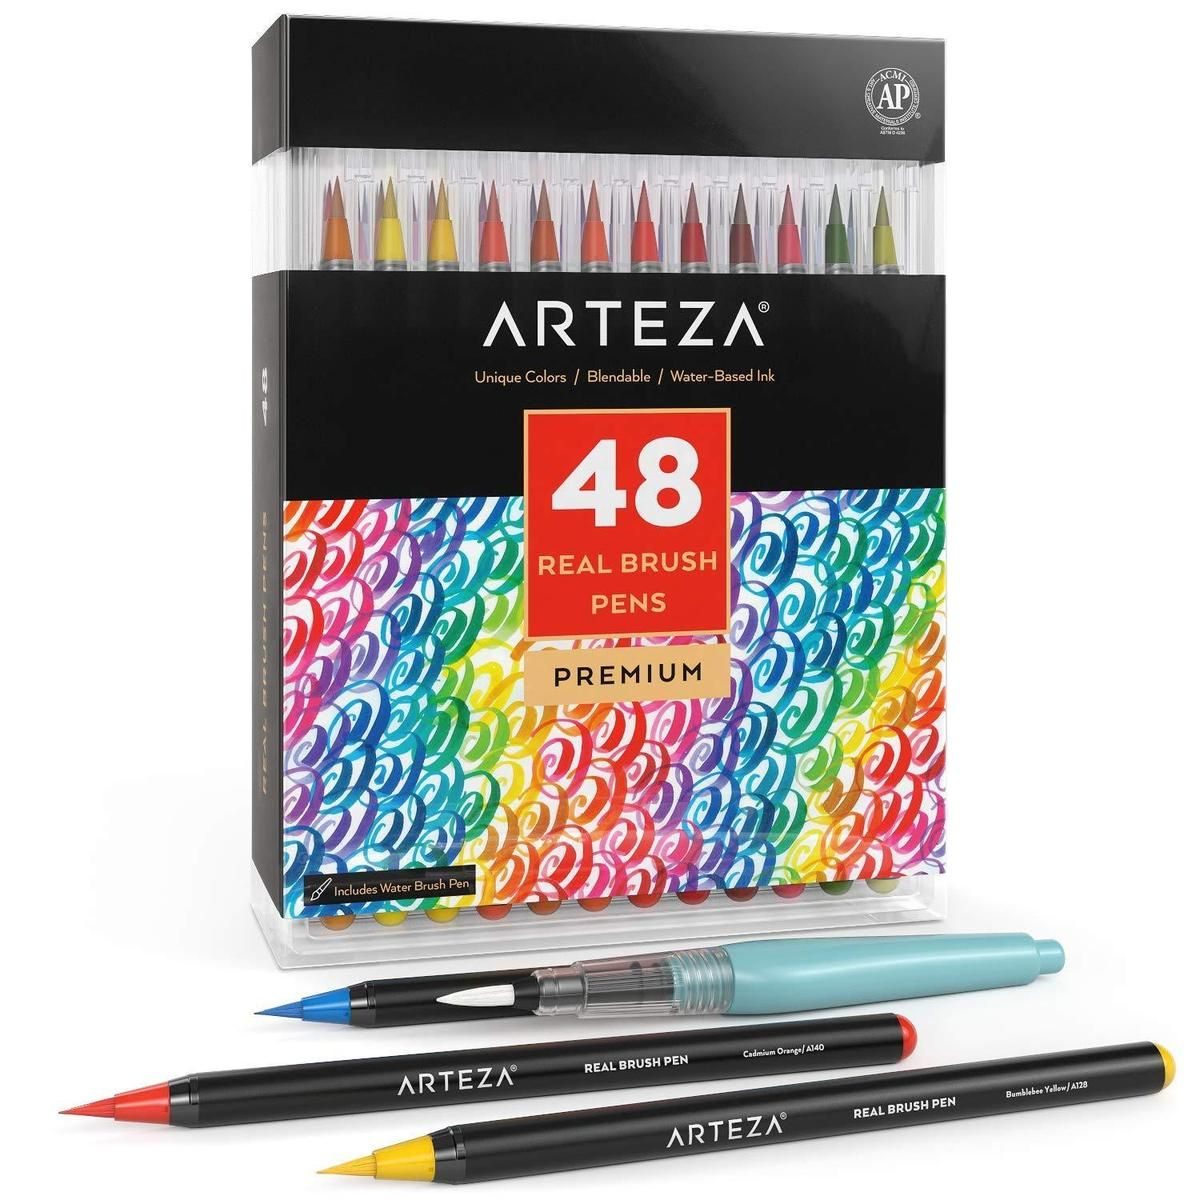 Real Brush Pens Set Of 48 Brush Pen Pen Sets Pen Watercolor